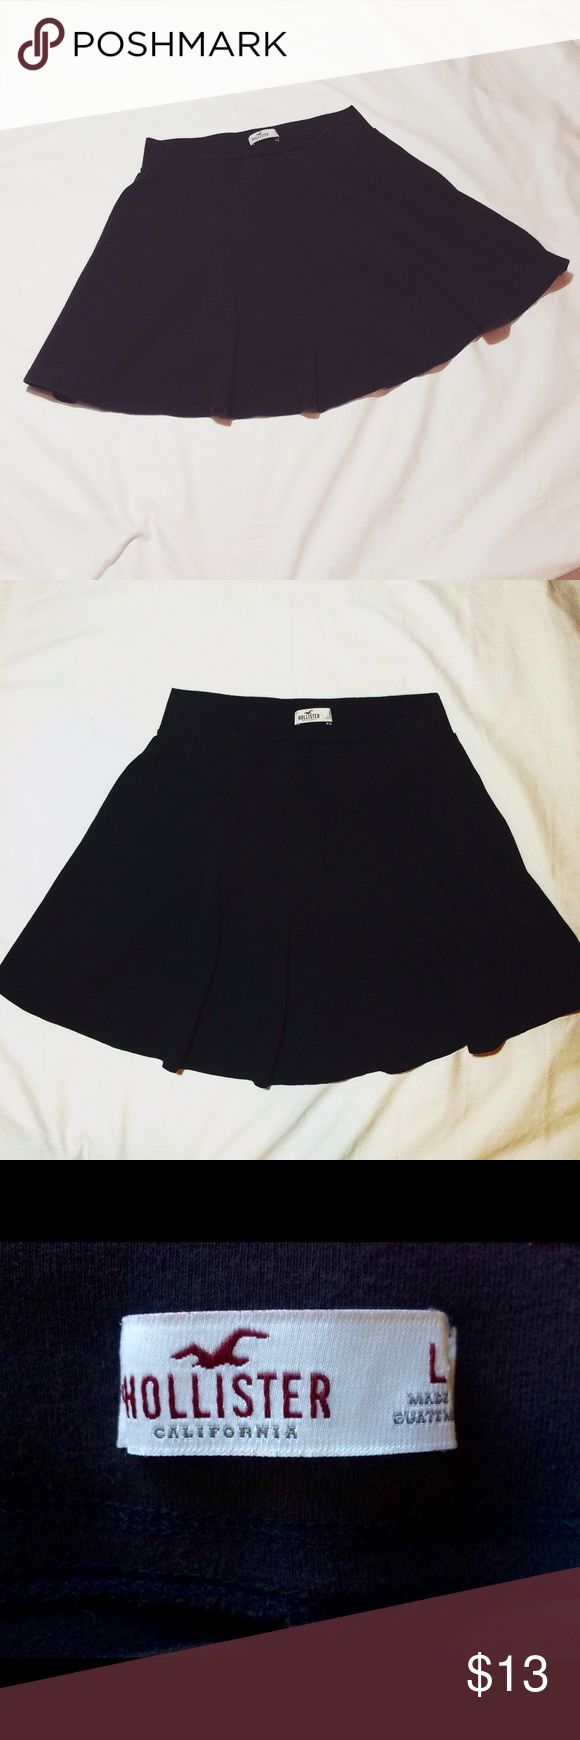 Black Skirt Casual black skirt , comfortable waistband soft and stretchy 💕 Hollister Skirts Circle & Skater